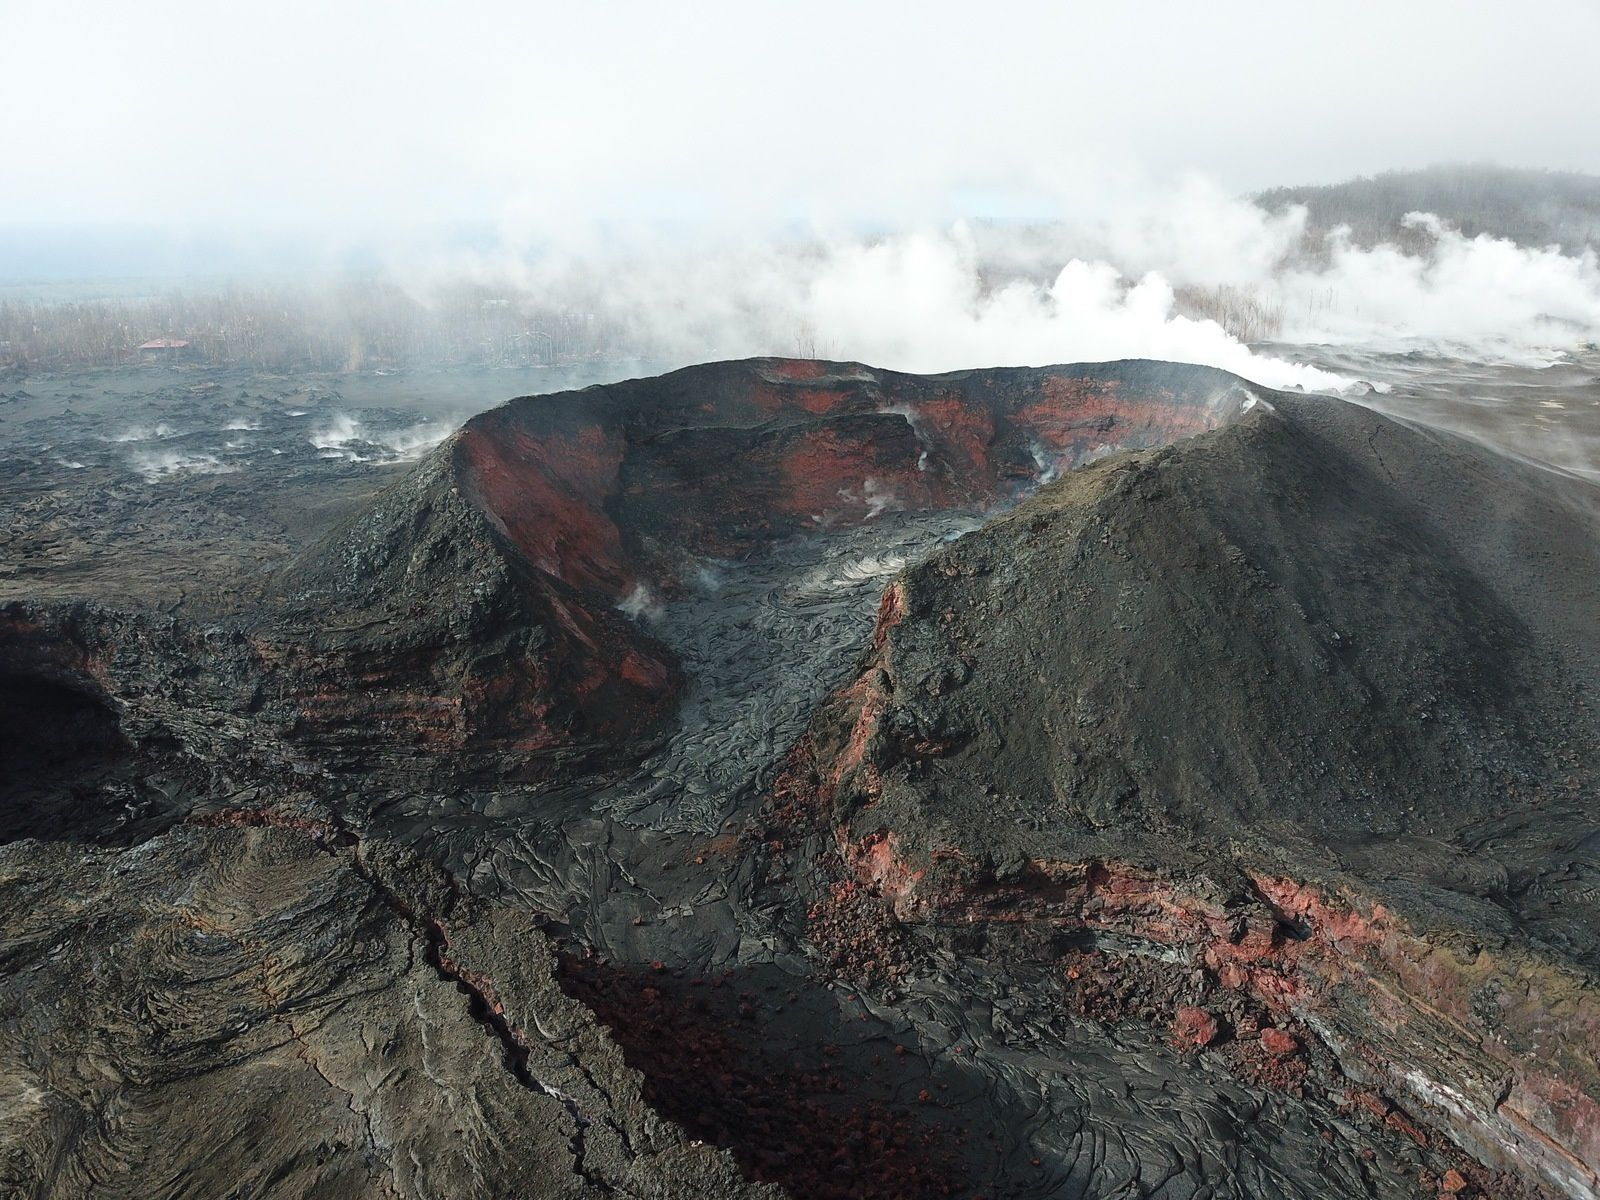 Kilauea East rift zone - evolution of the cone on fissure 8 - video about this link: https://volcanoes.usgs.gov/observatories/hvo/multimedia_uploads/multimediaFile-2627.mp4